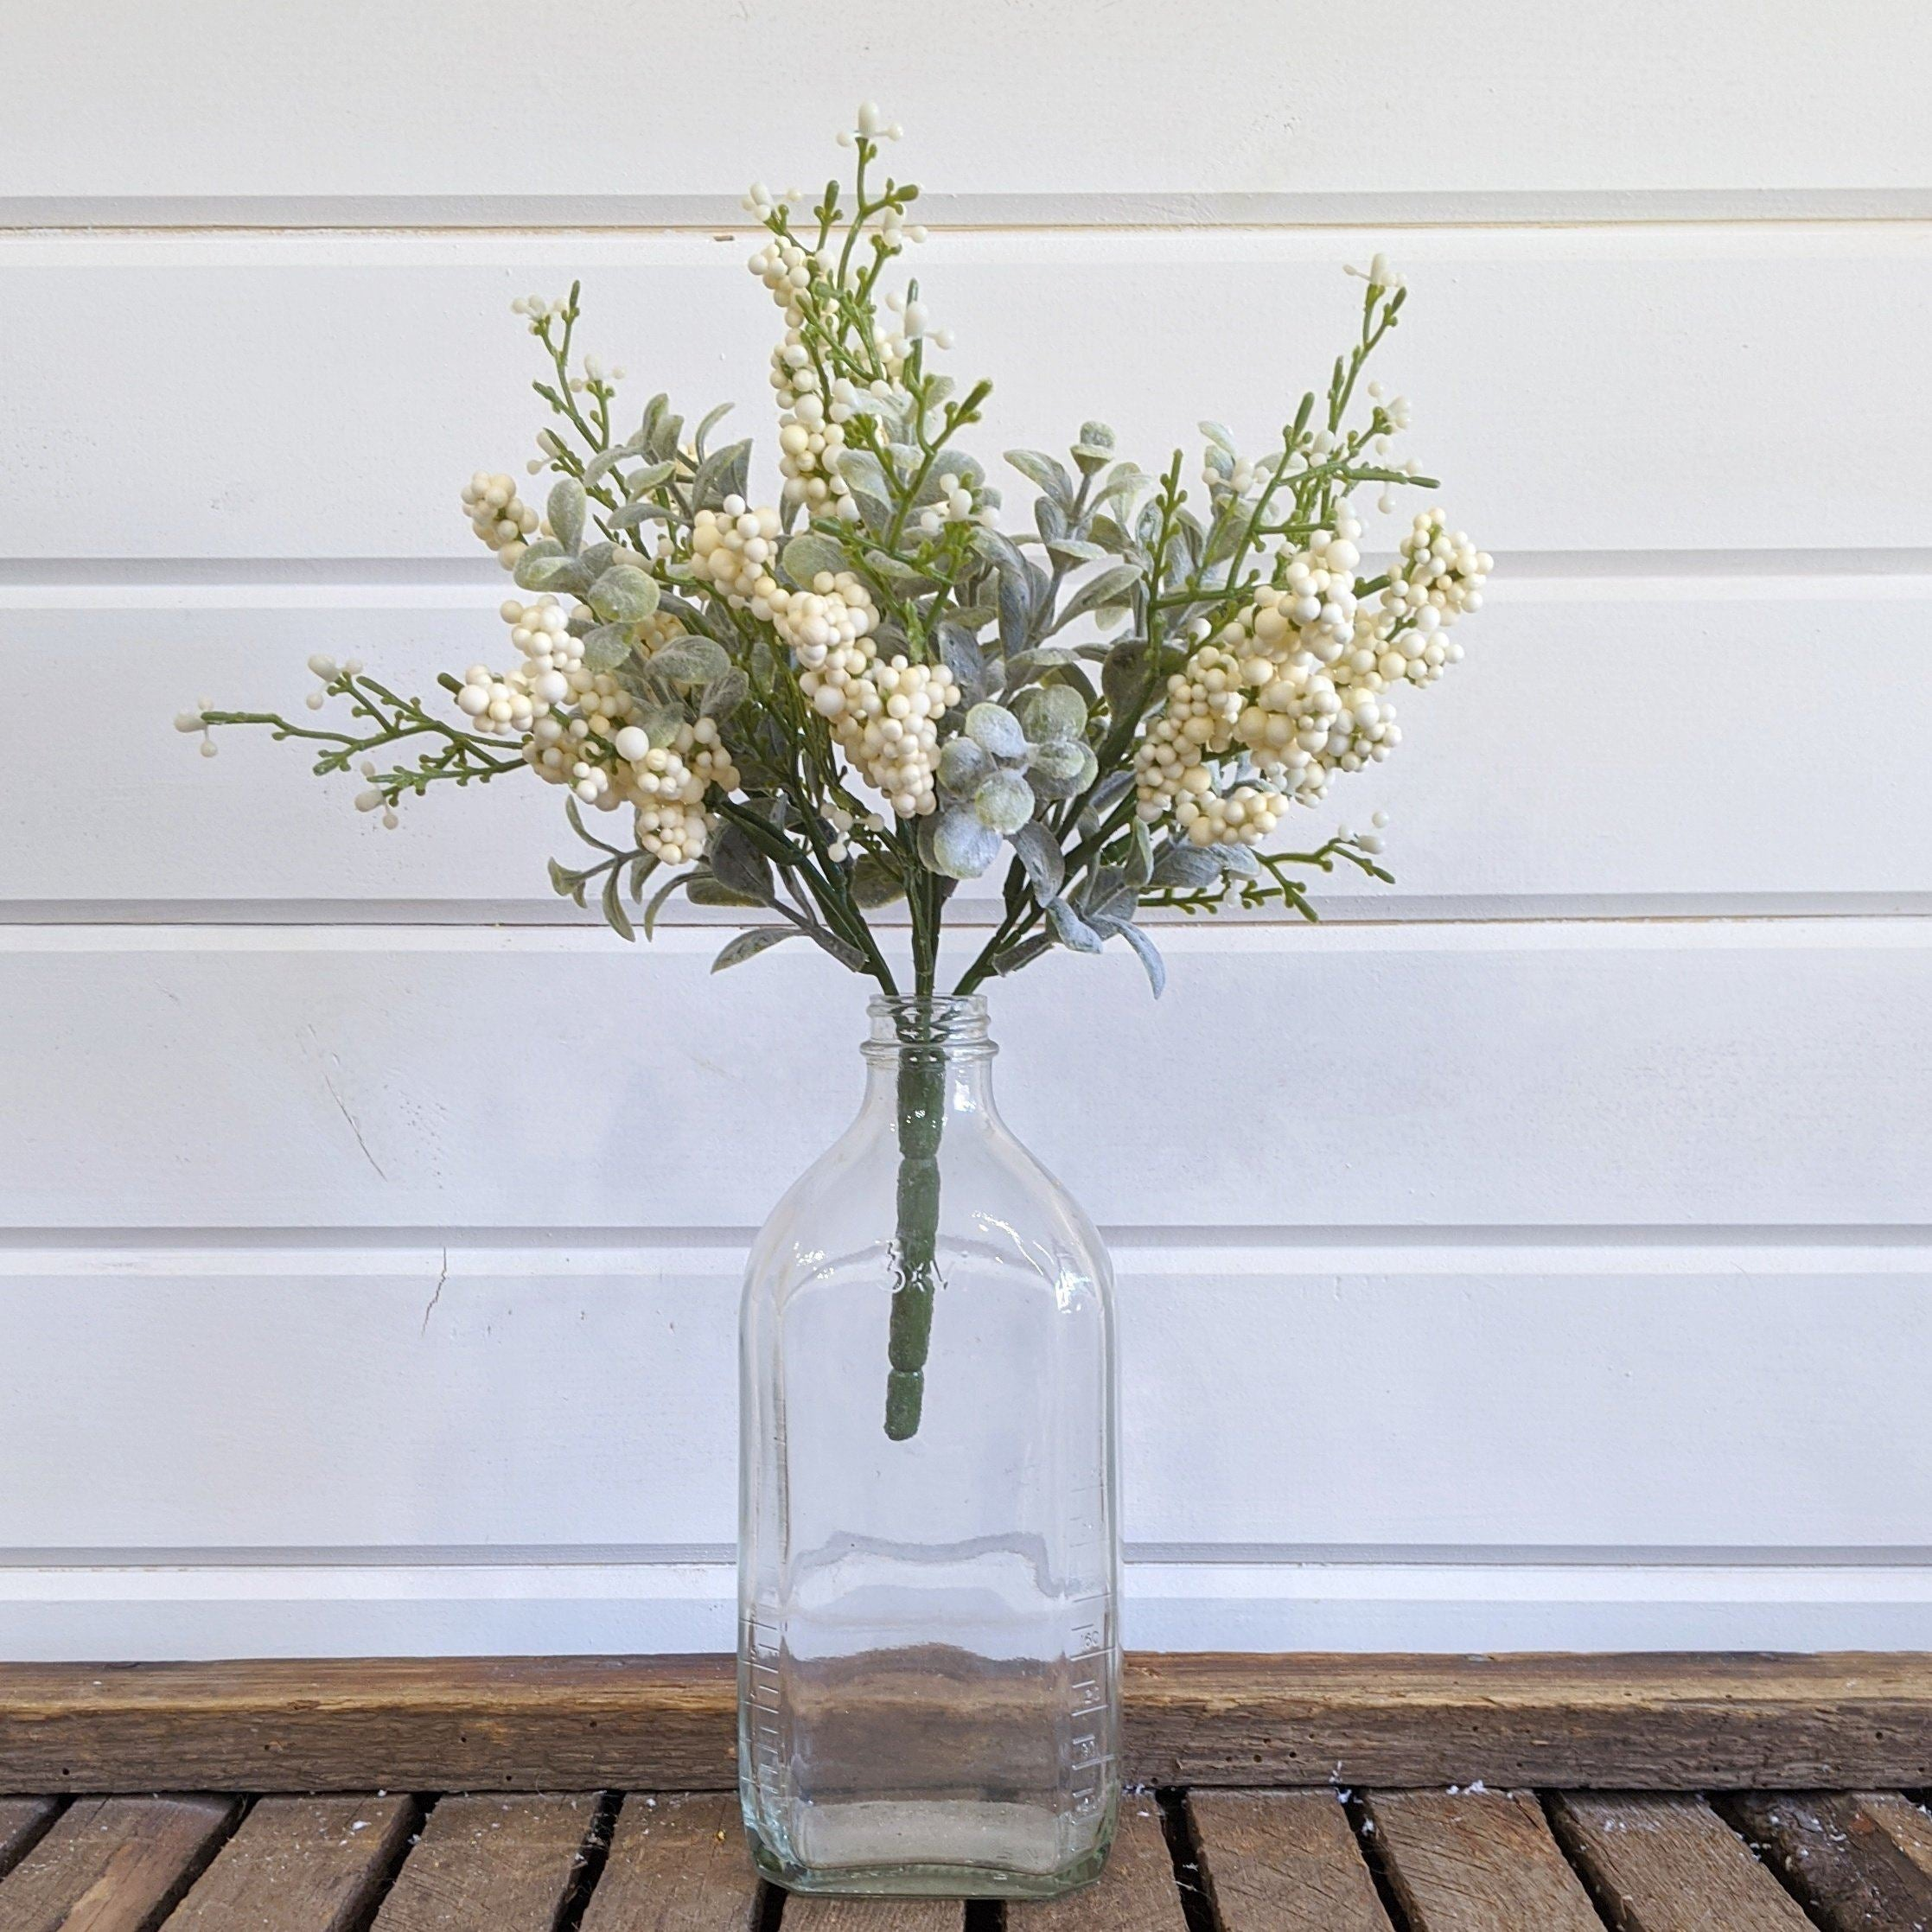 Mini Eucalyptus Spring Greenery with cream berries  - faux - sola wood flowers wholesale